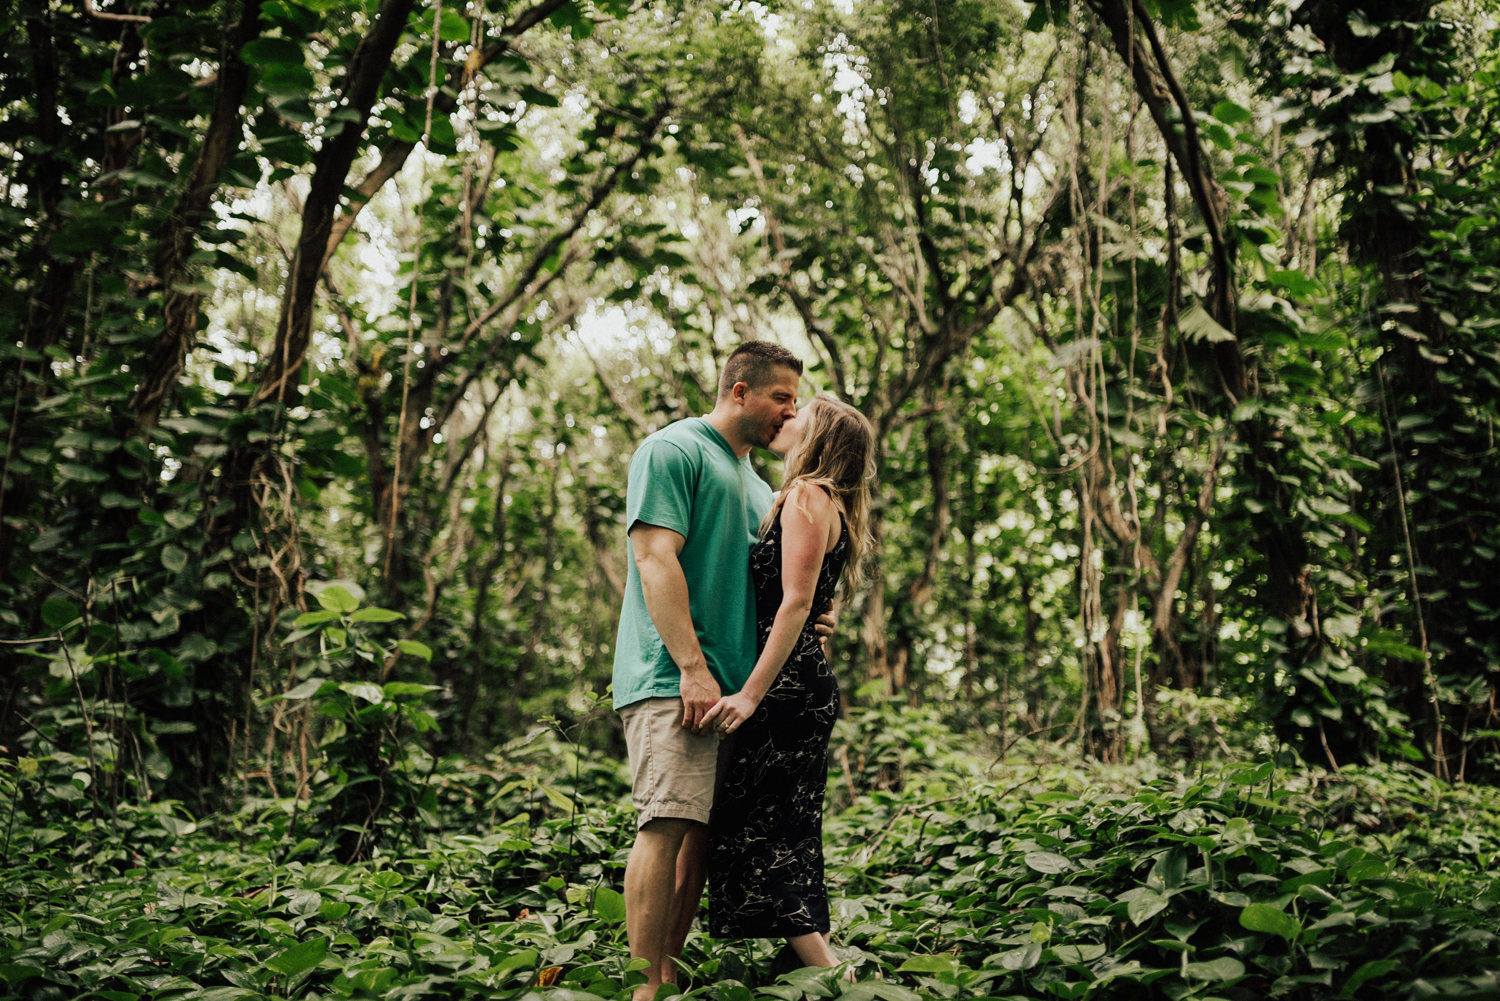 Kauai-Hawaii-engagement-photos-5.jpg